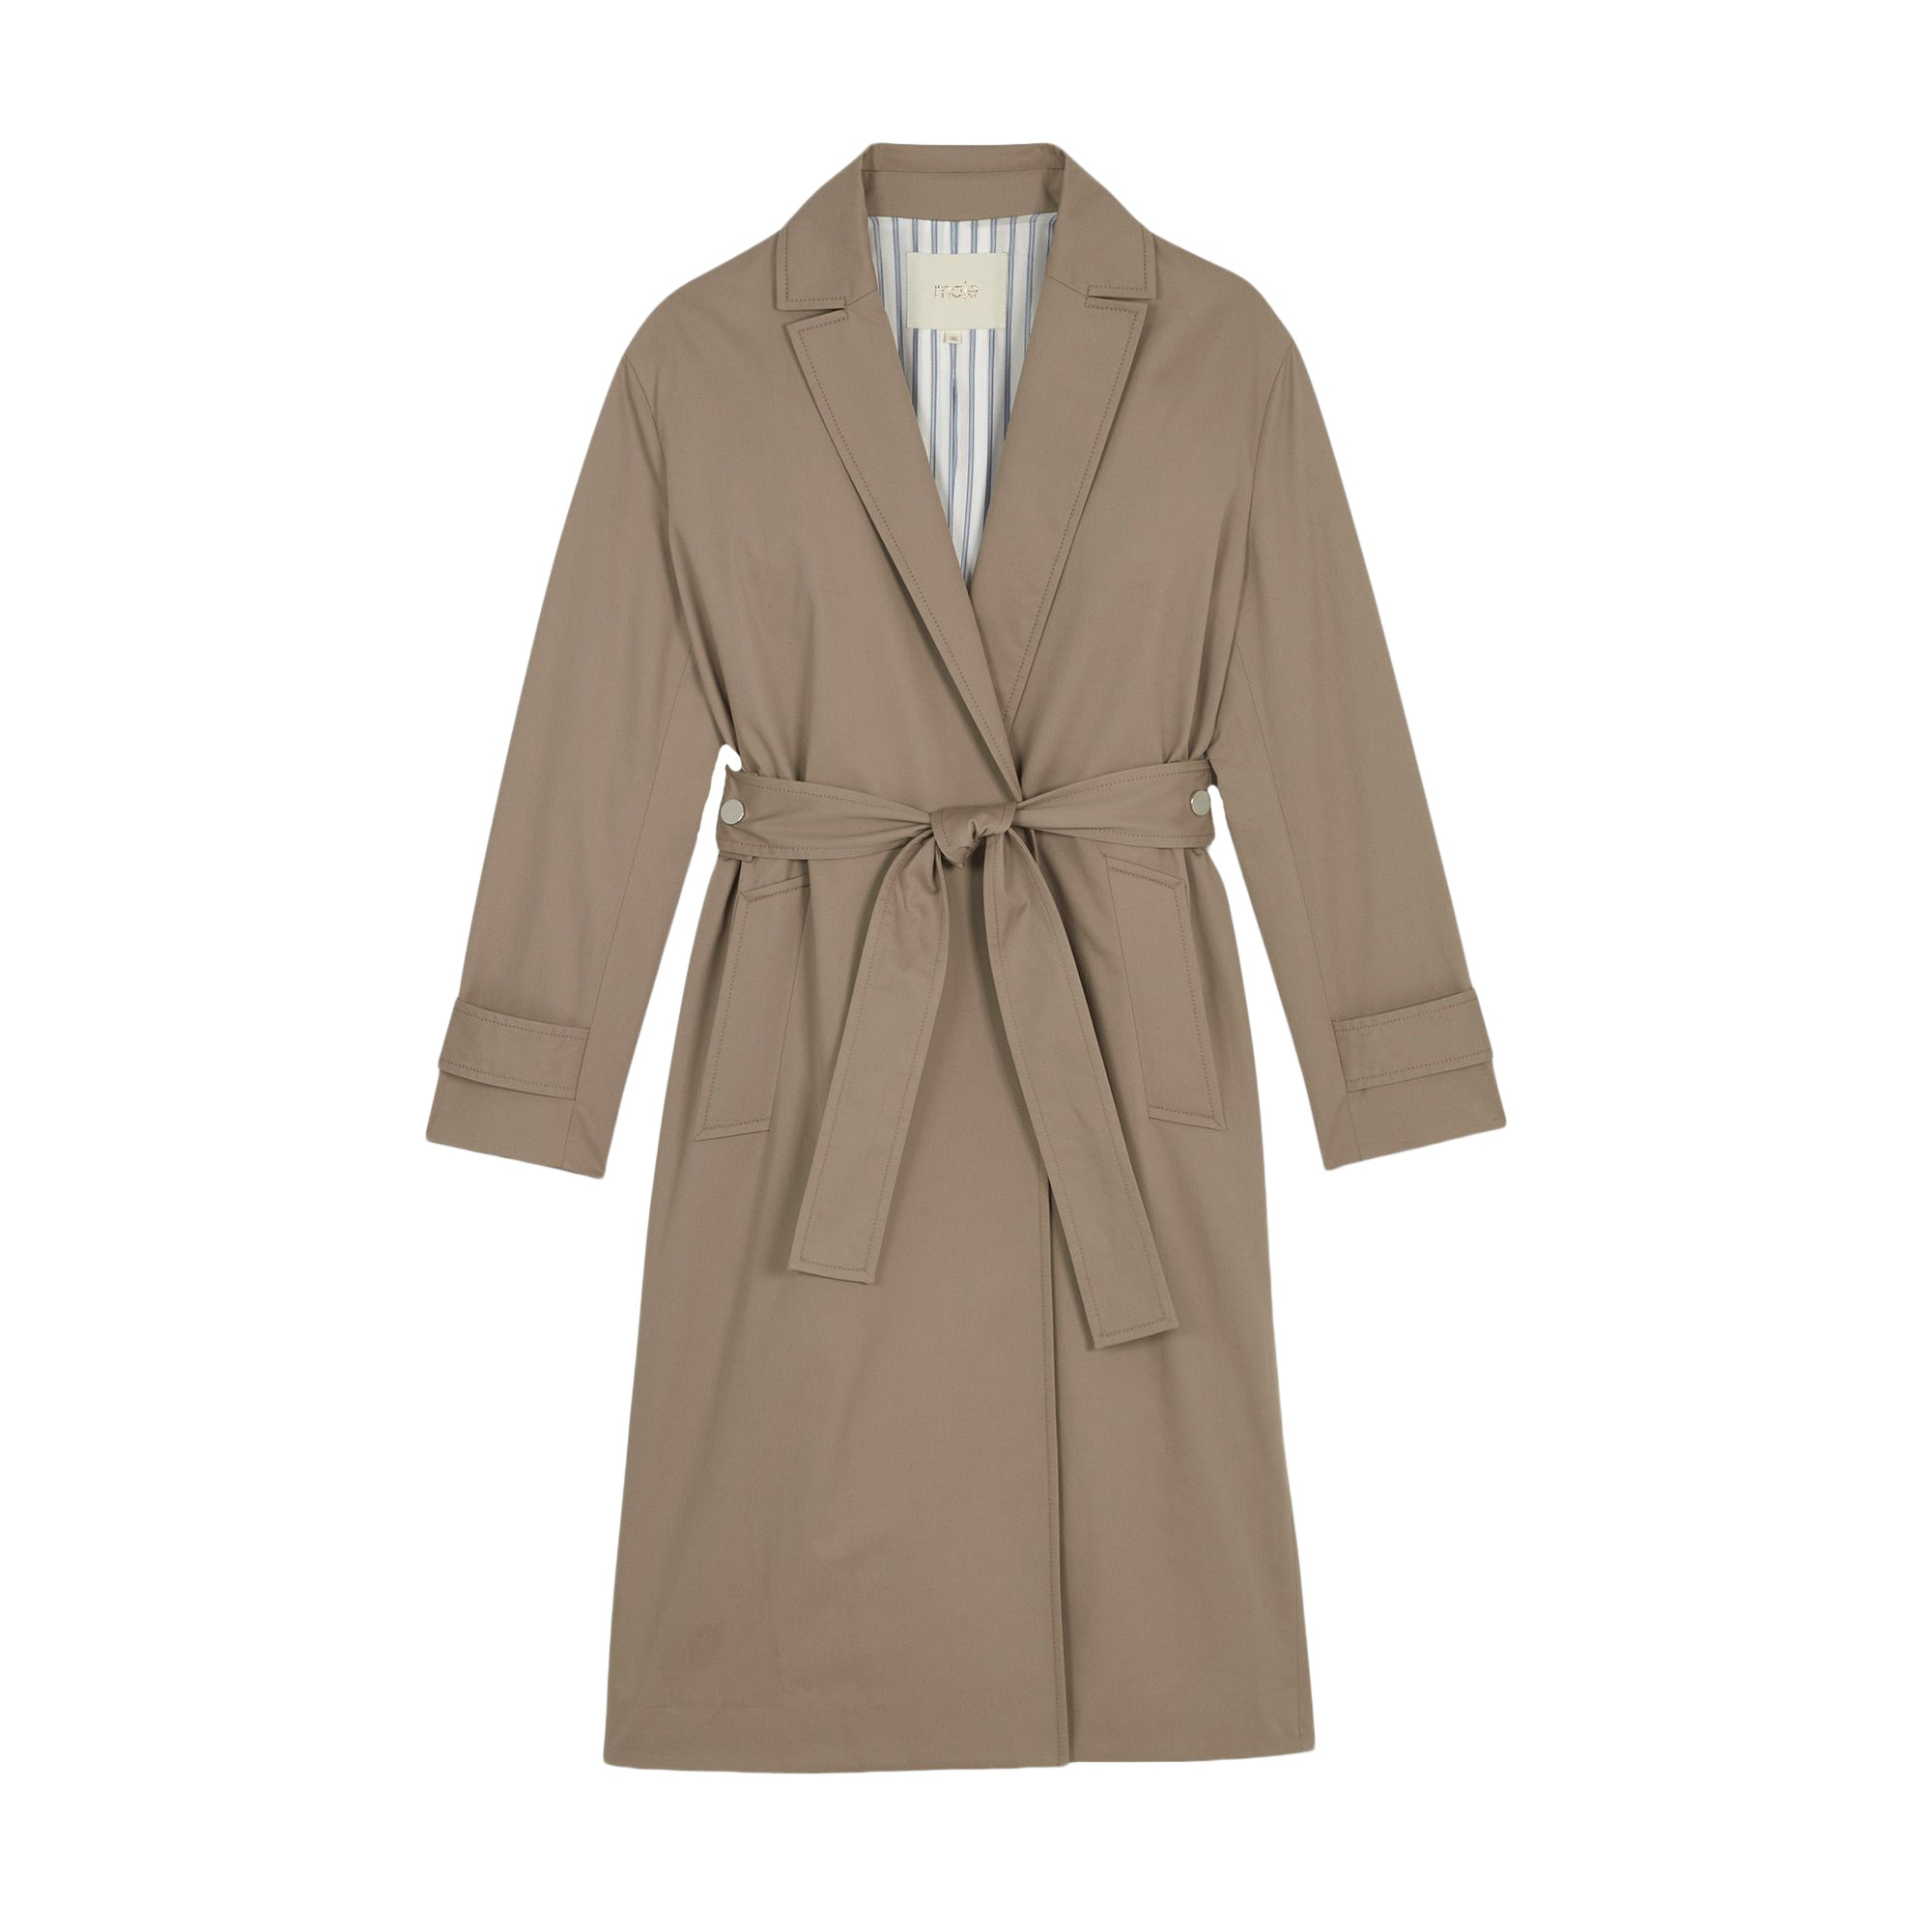 T2 MAJE trench 8106822 M 38 Imperméable beige P7v8qIxnq